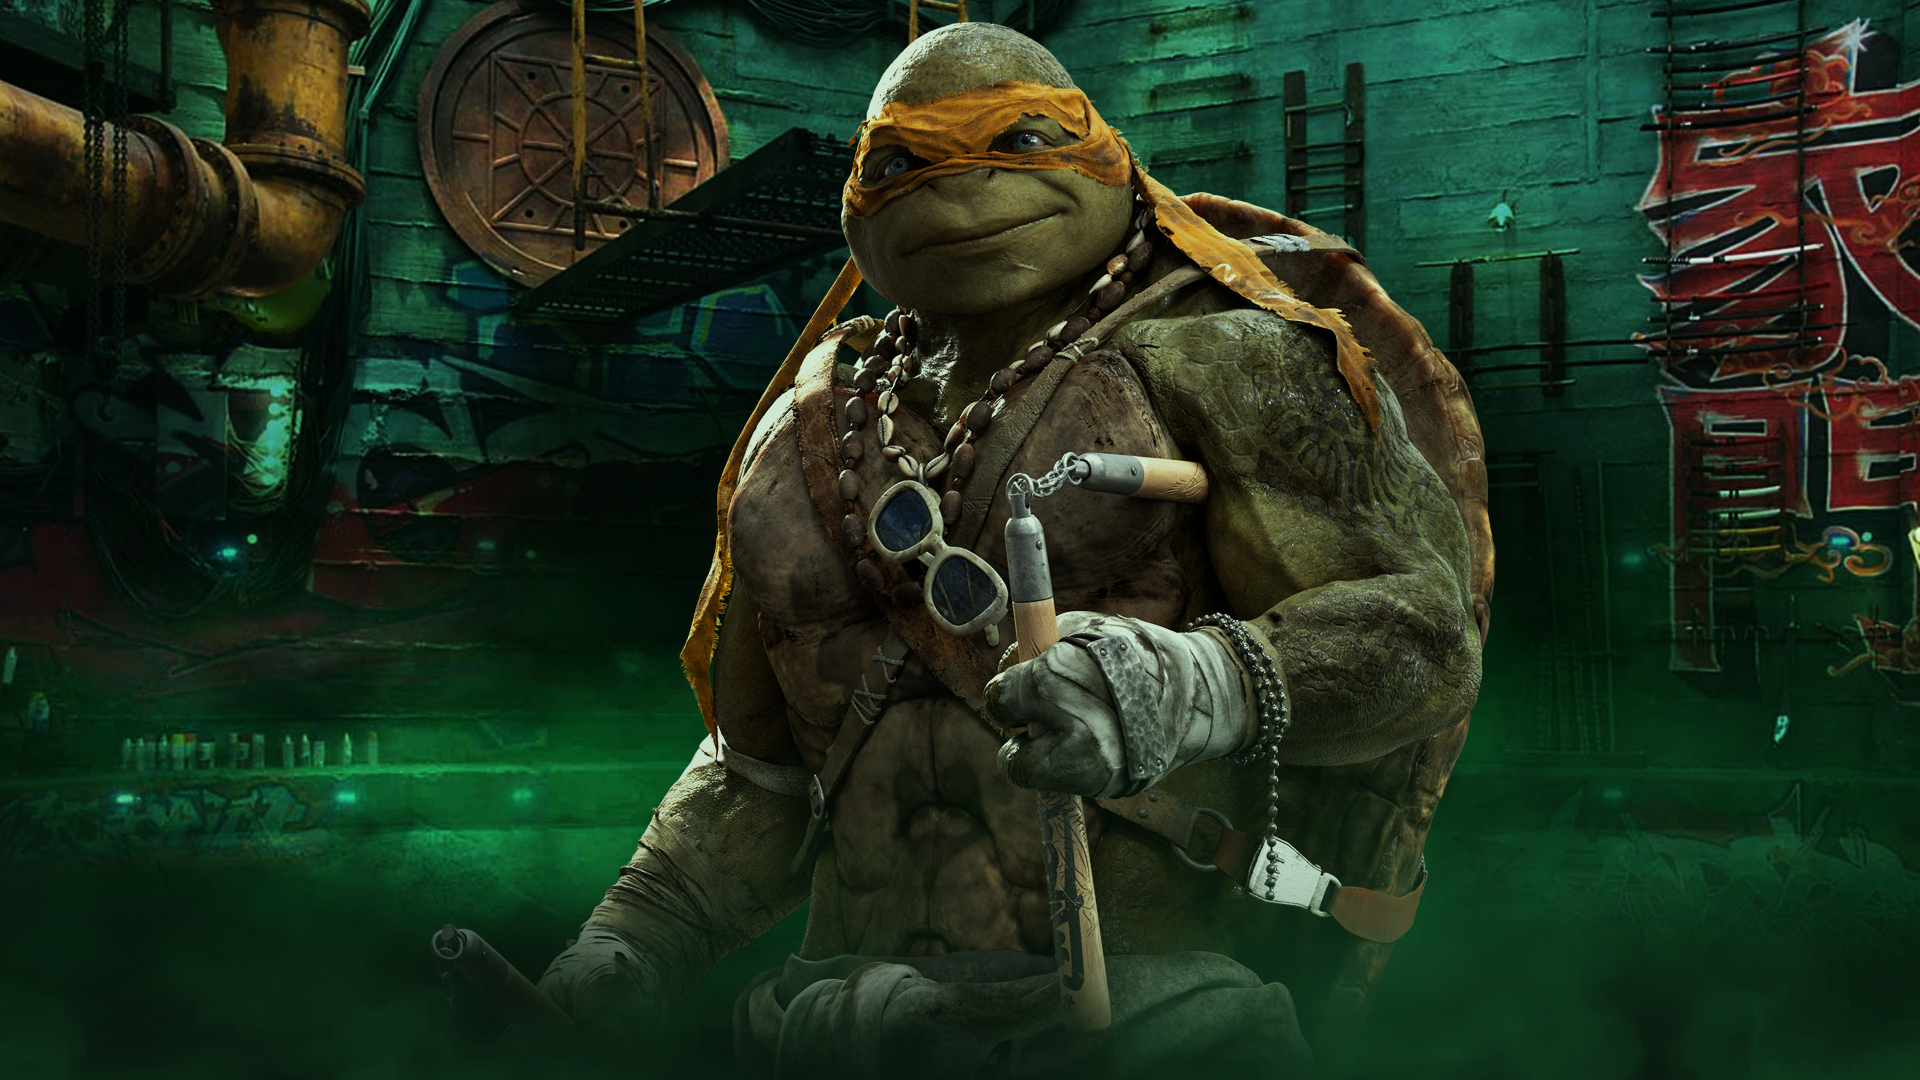 TMNT Michelangelo Wallpaper 1920x1080 by sachso74 on DeviantArt